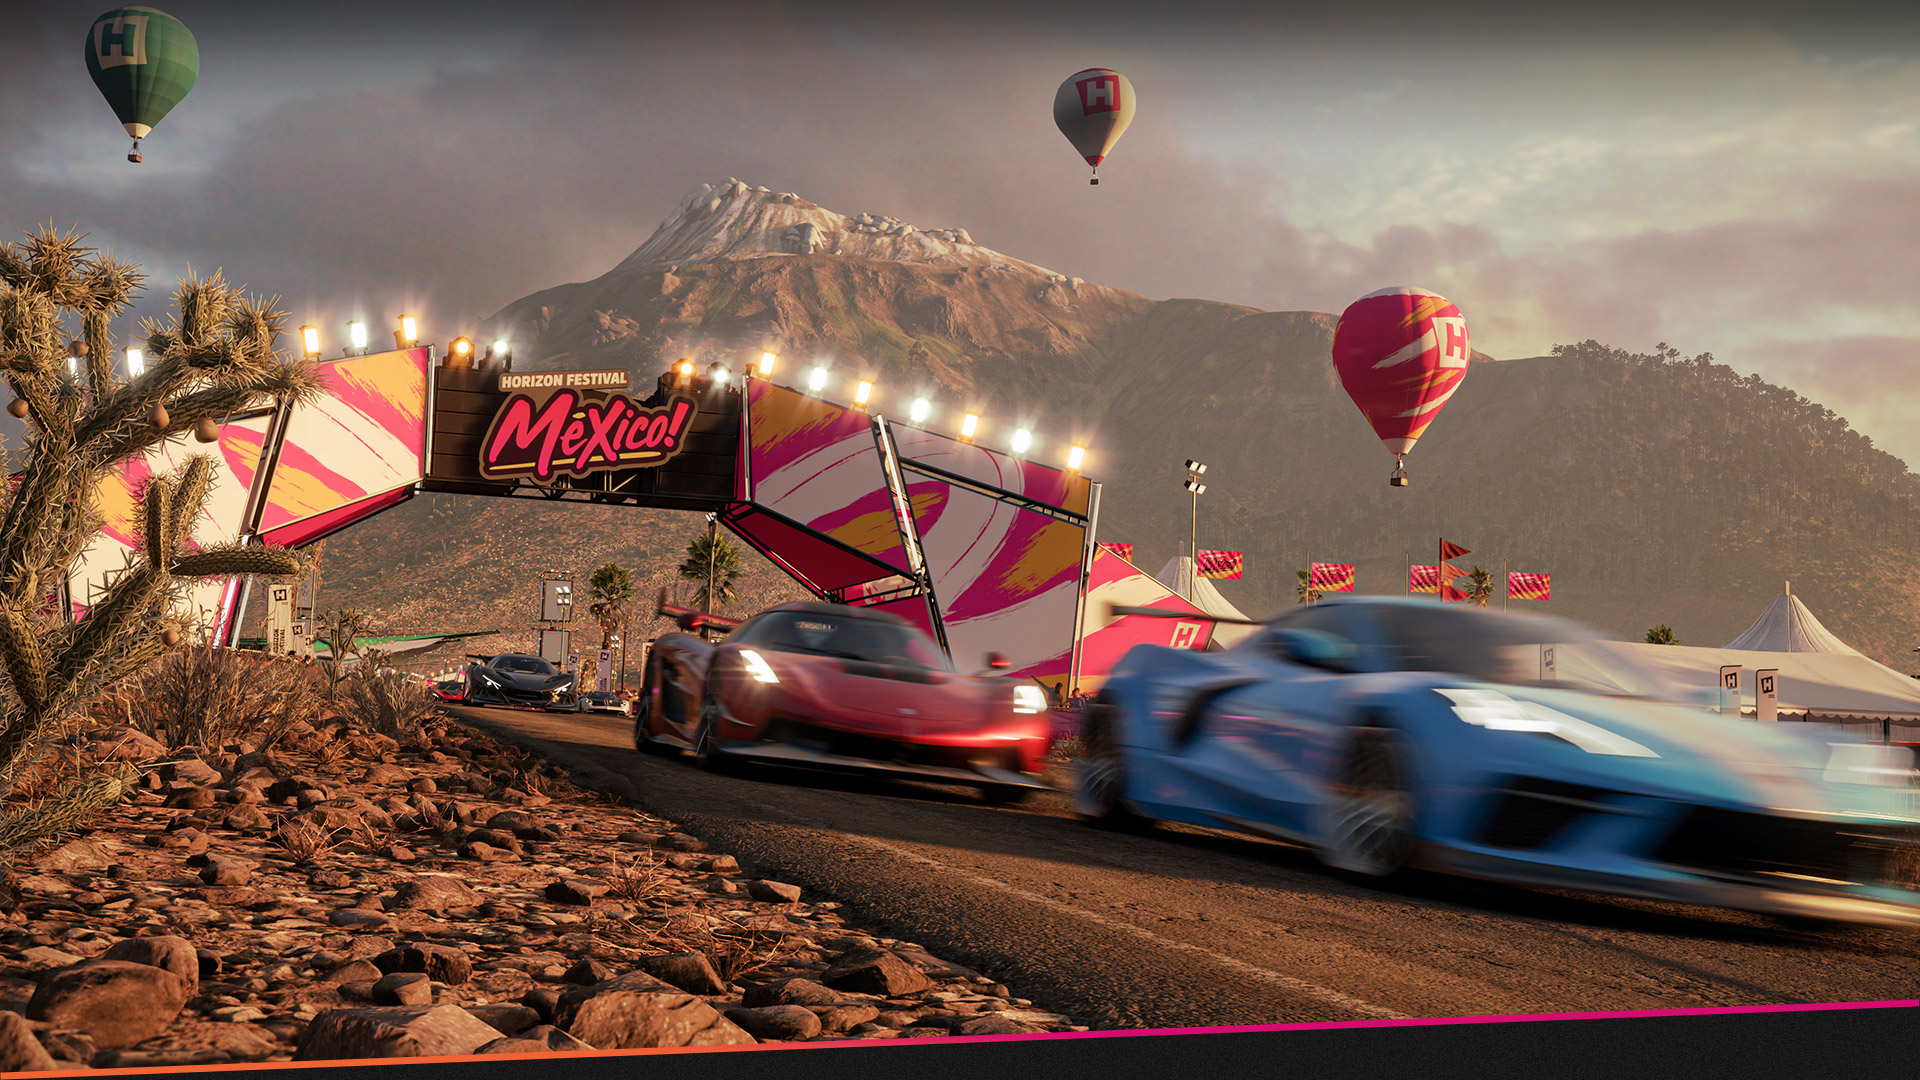 Cars racing through a Horizon Festival Mexico! Finish line in a desert with hot air balloons and a mountain.